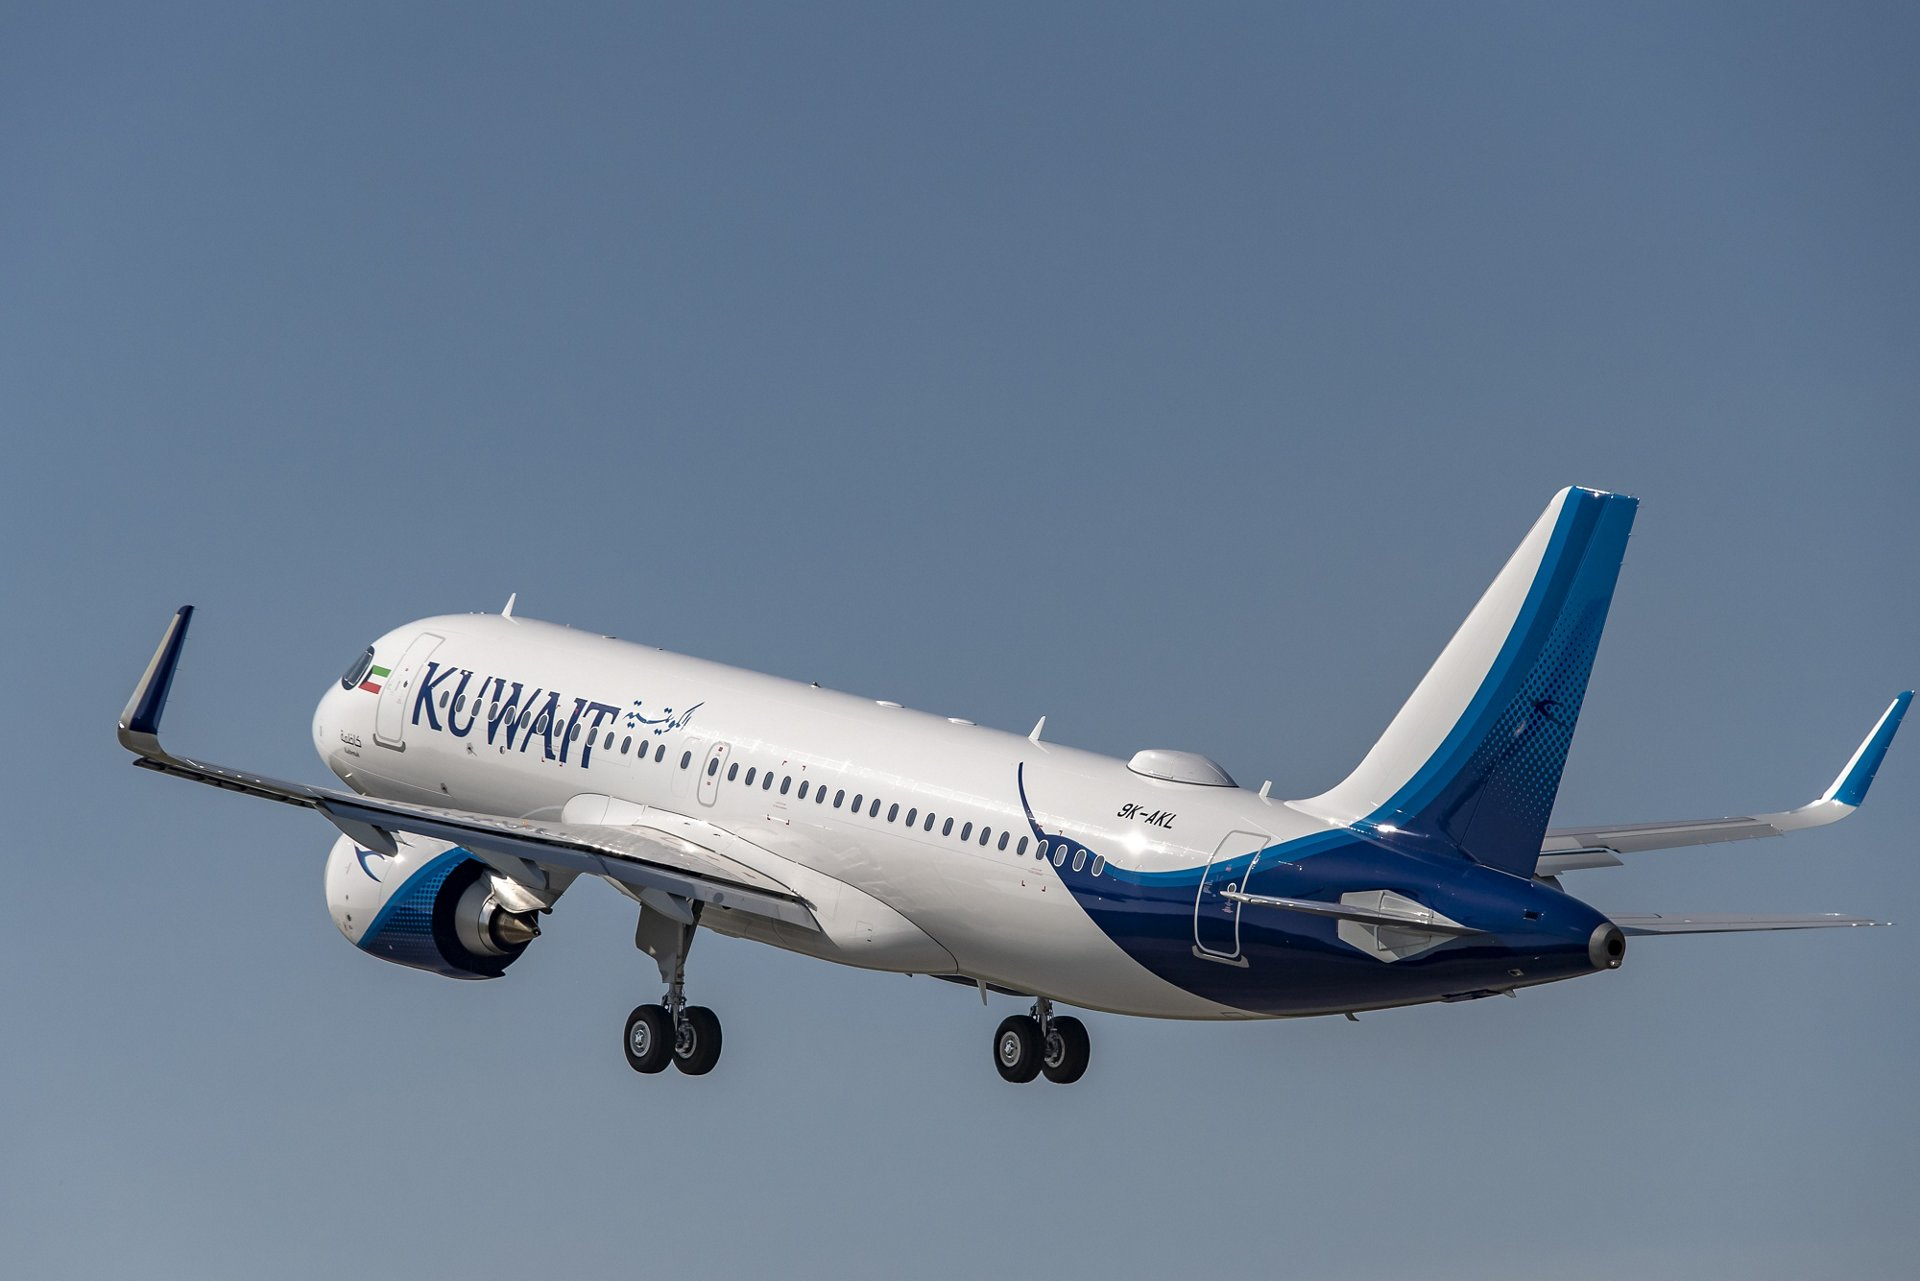 The first A320neo for operation by Kuwait Airways, delivered in 2019, marks an important step in the airline's ambitious fleet renewal and growth plans